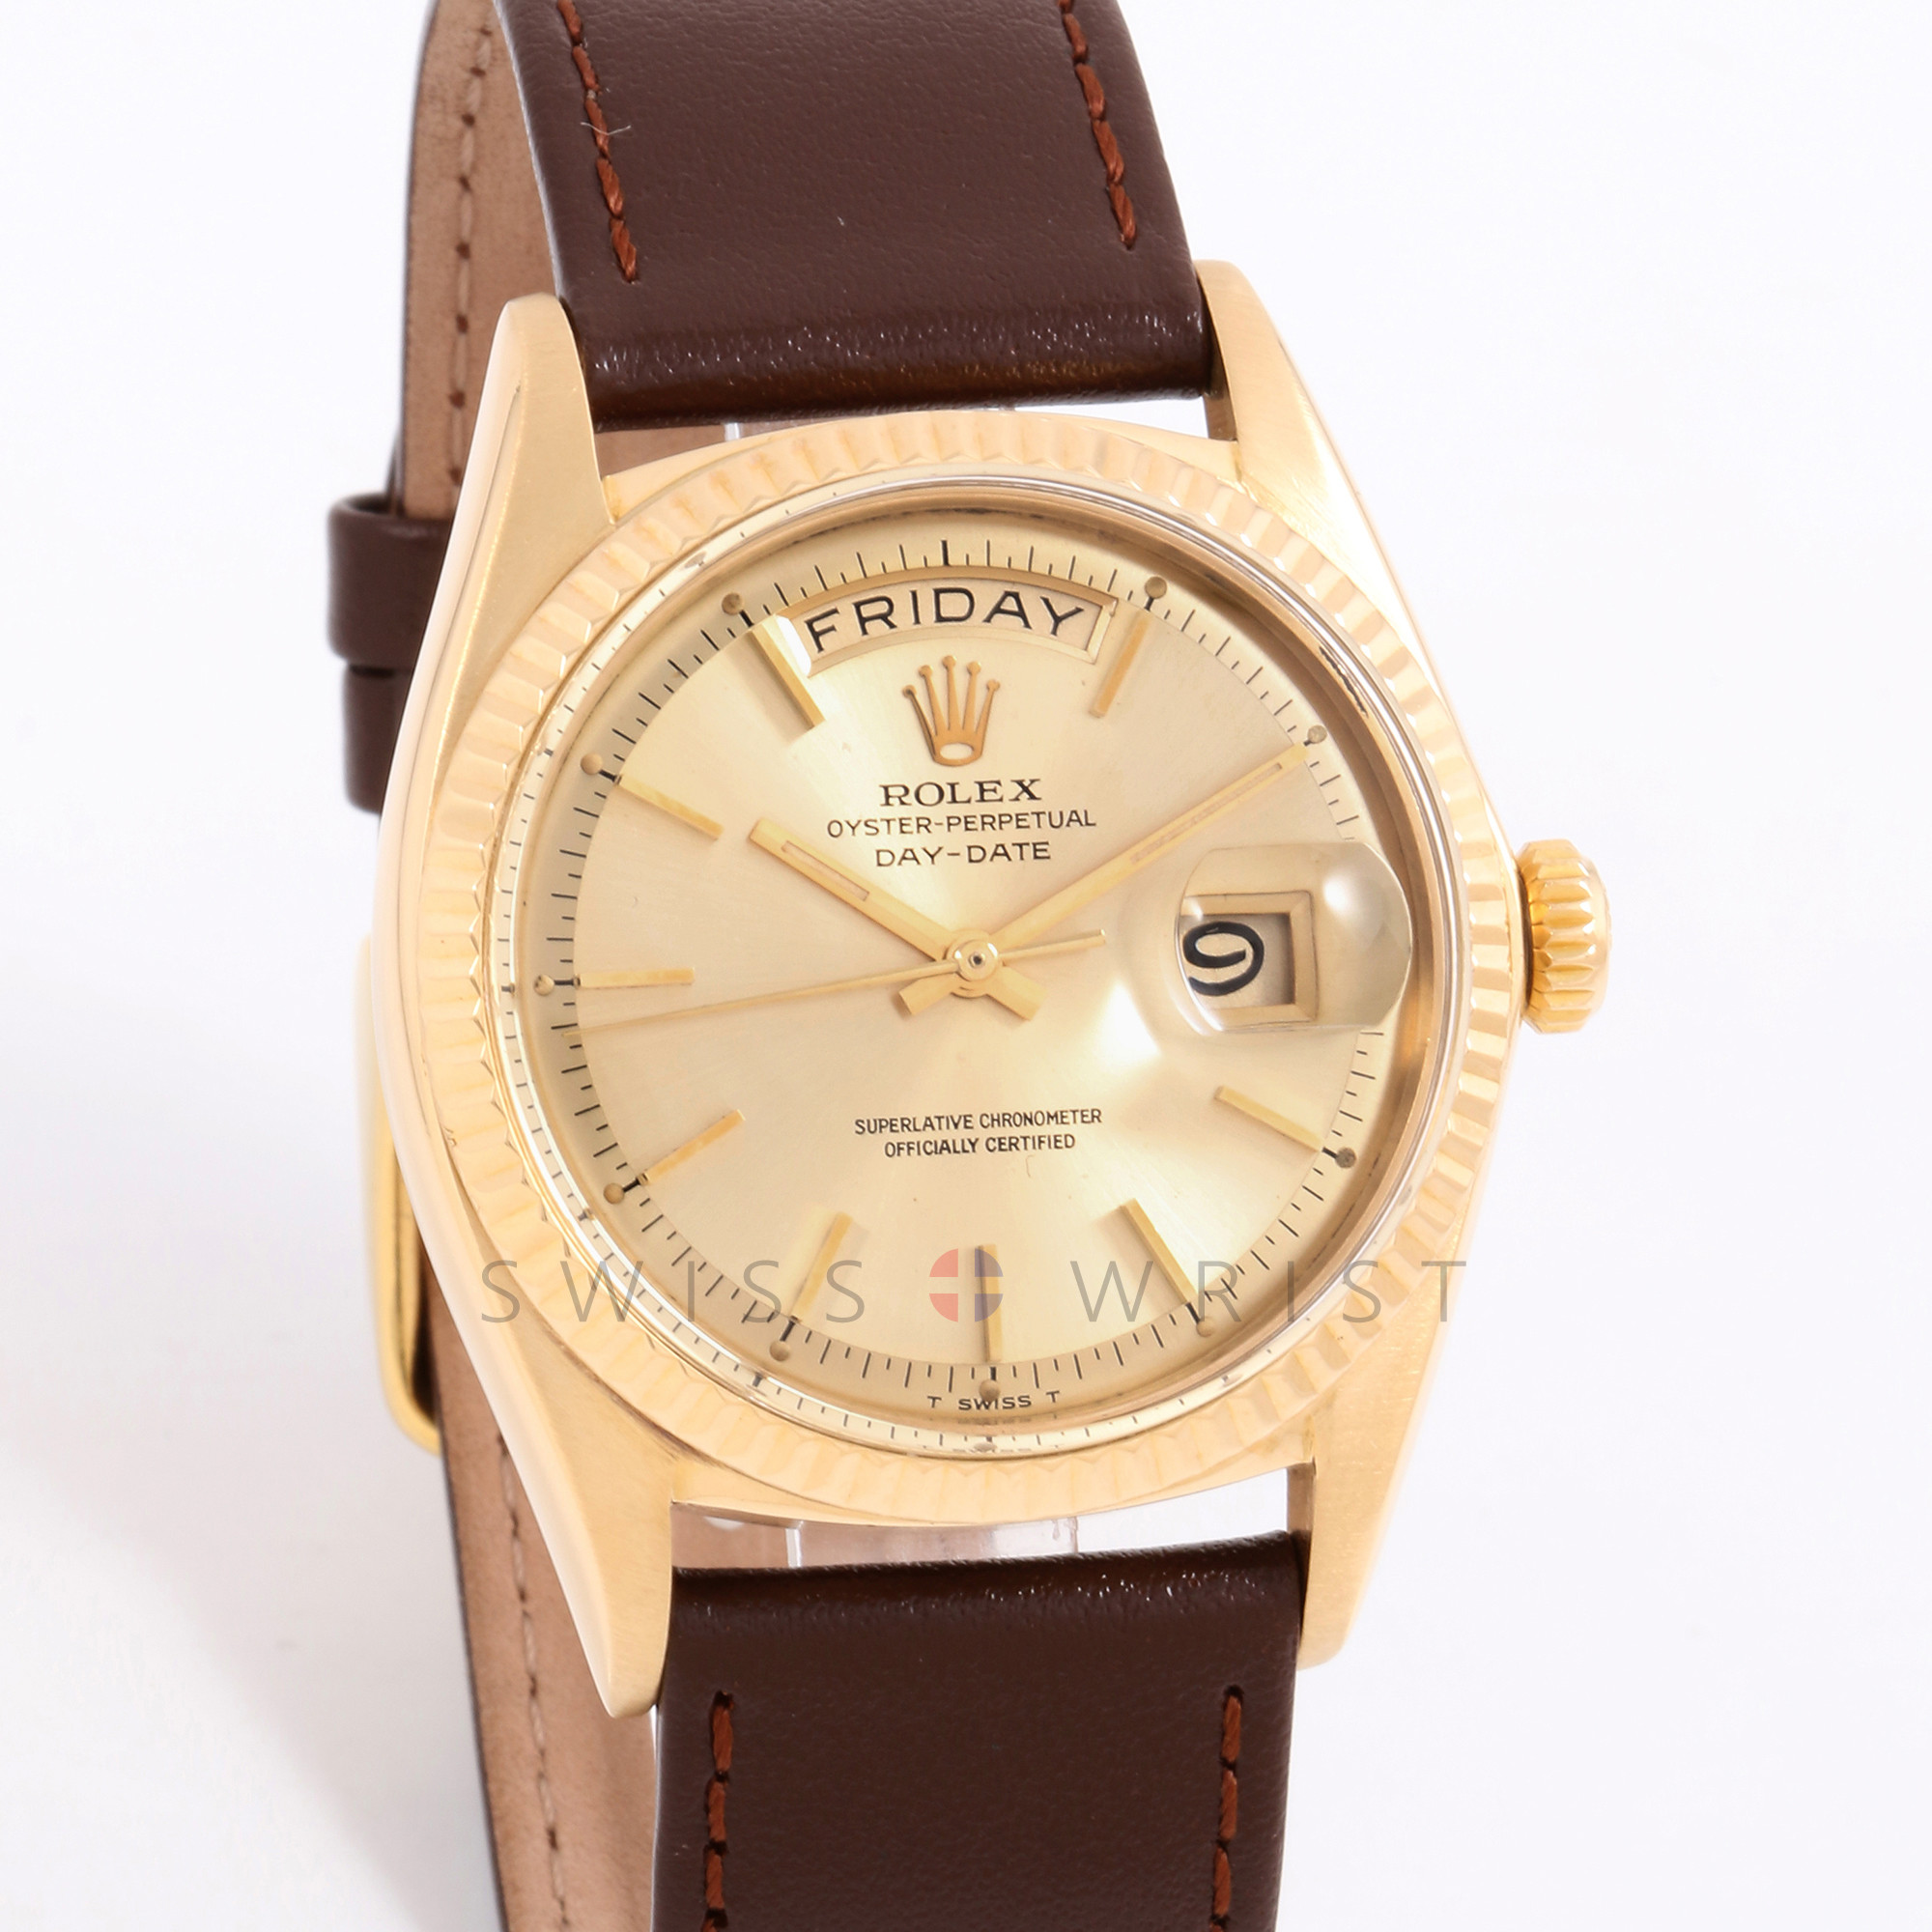 Rolex Day-Date 36 mm 1803 Yellow Gold, Champagne Stick Dial w/ Fluted Bezel on Brown Leather Strap - Pre-Owned Men's Watch